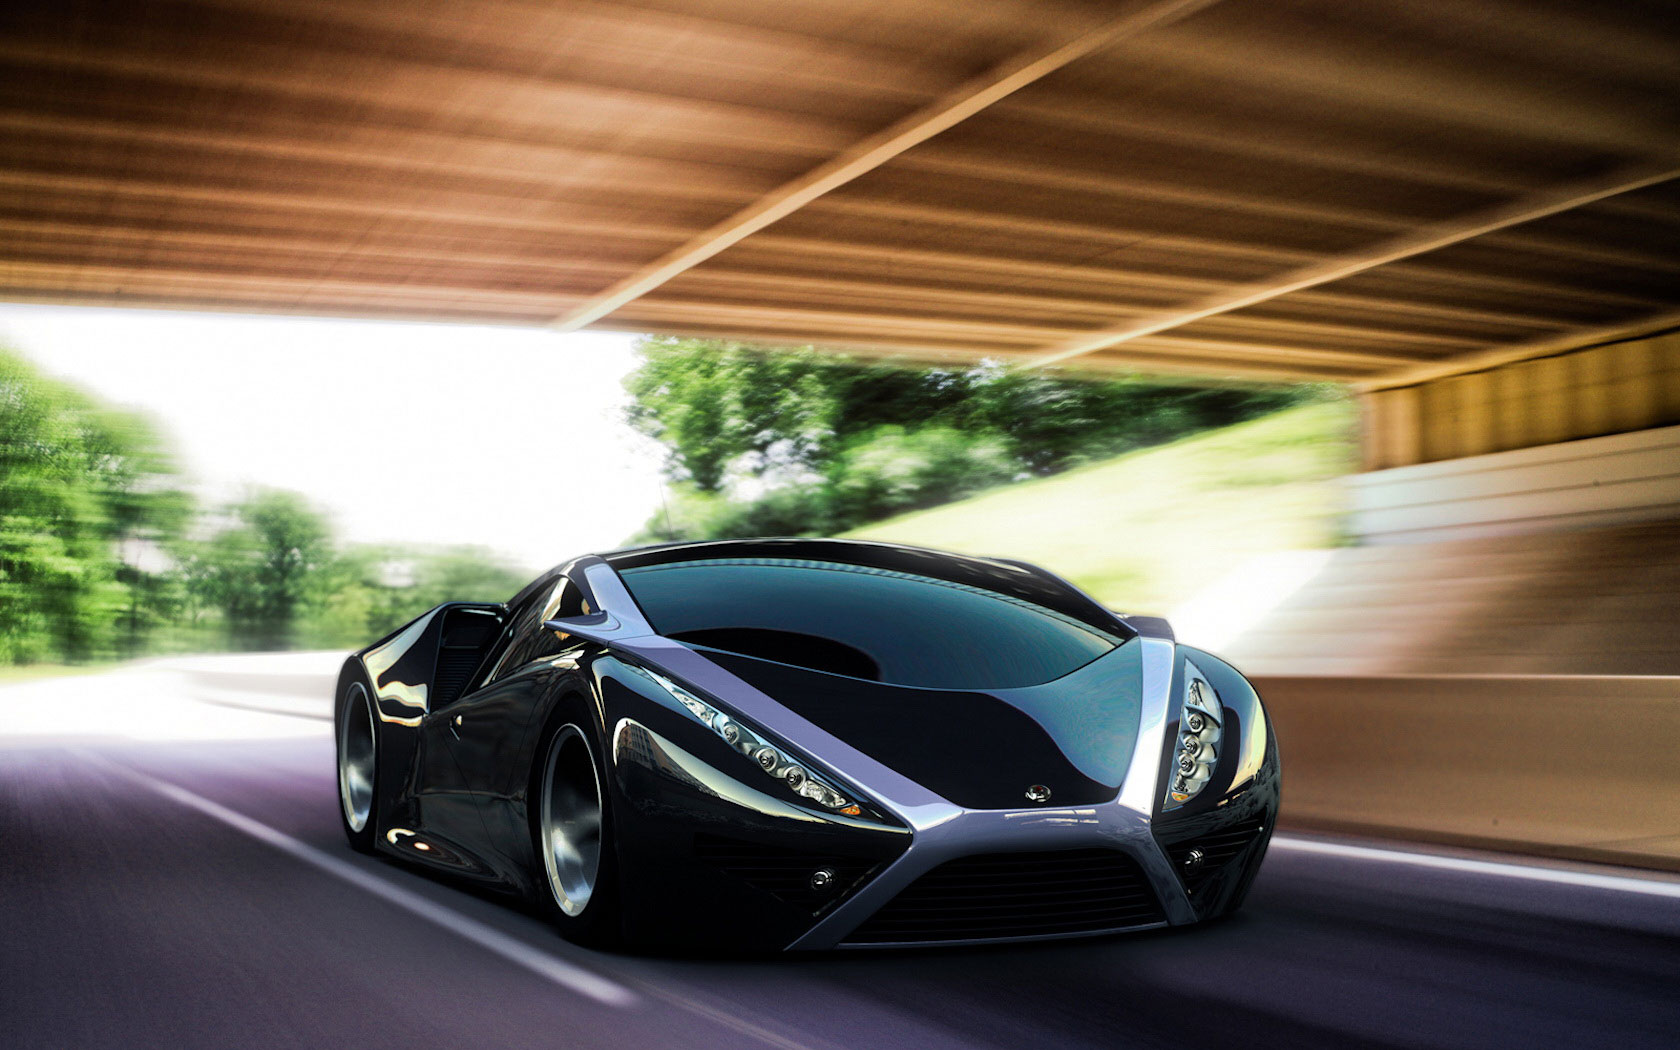 HD 3D Wallpapers Super Cool HD High Resolution Car Wallpapers 1680x1050